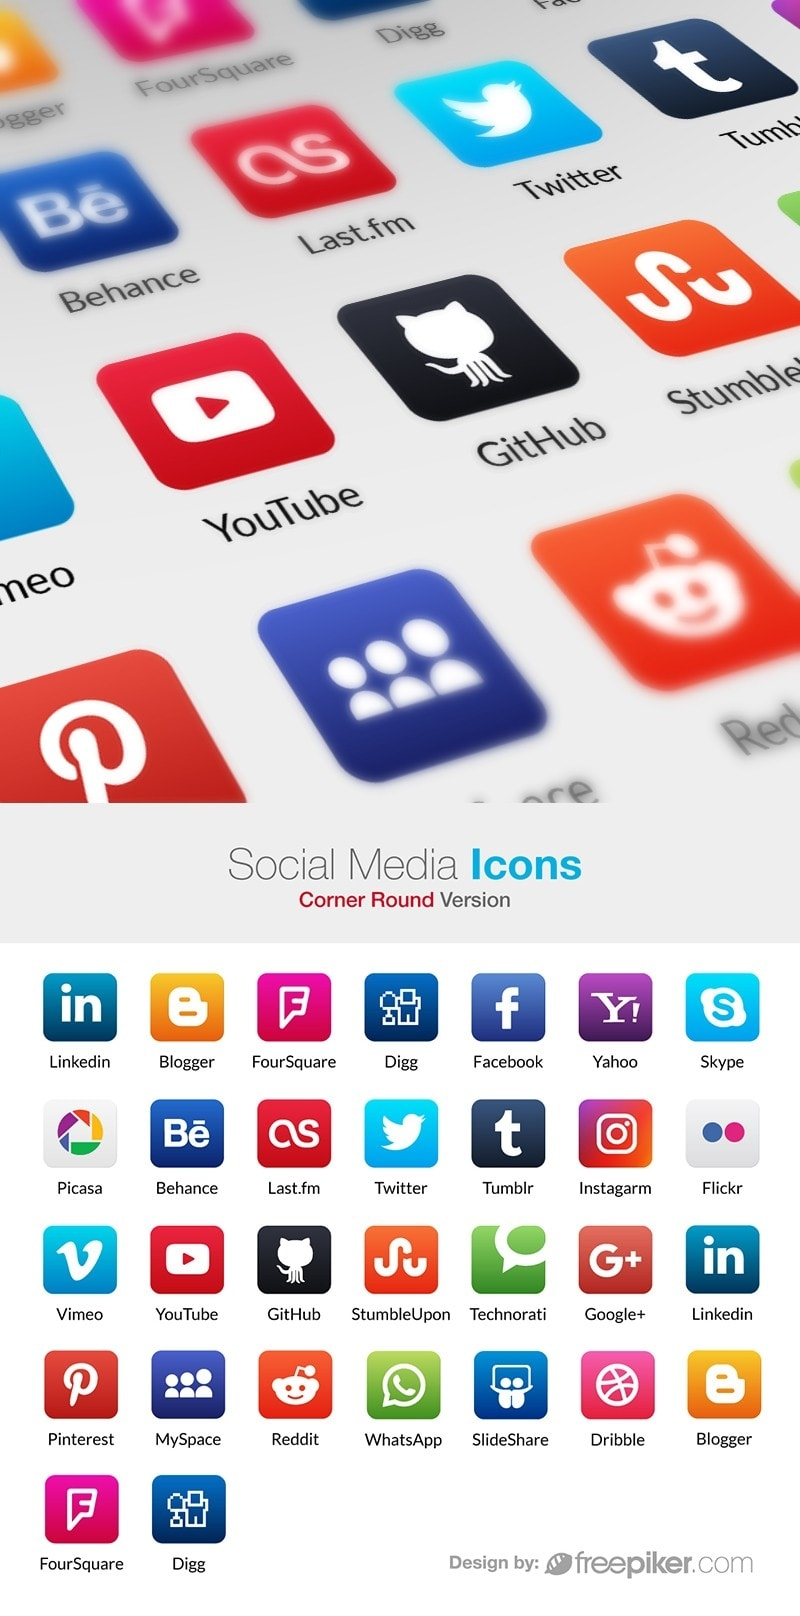 Social Media Icons Corner Rounded